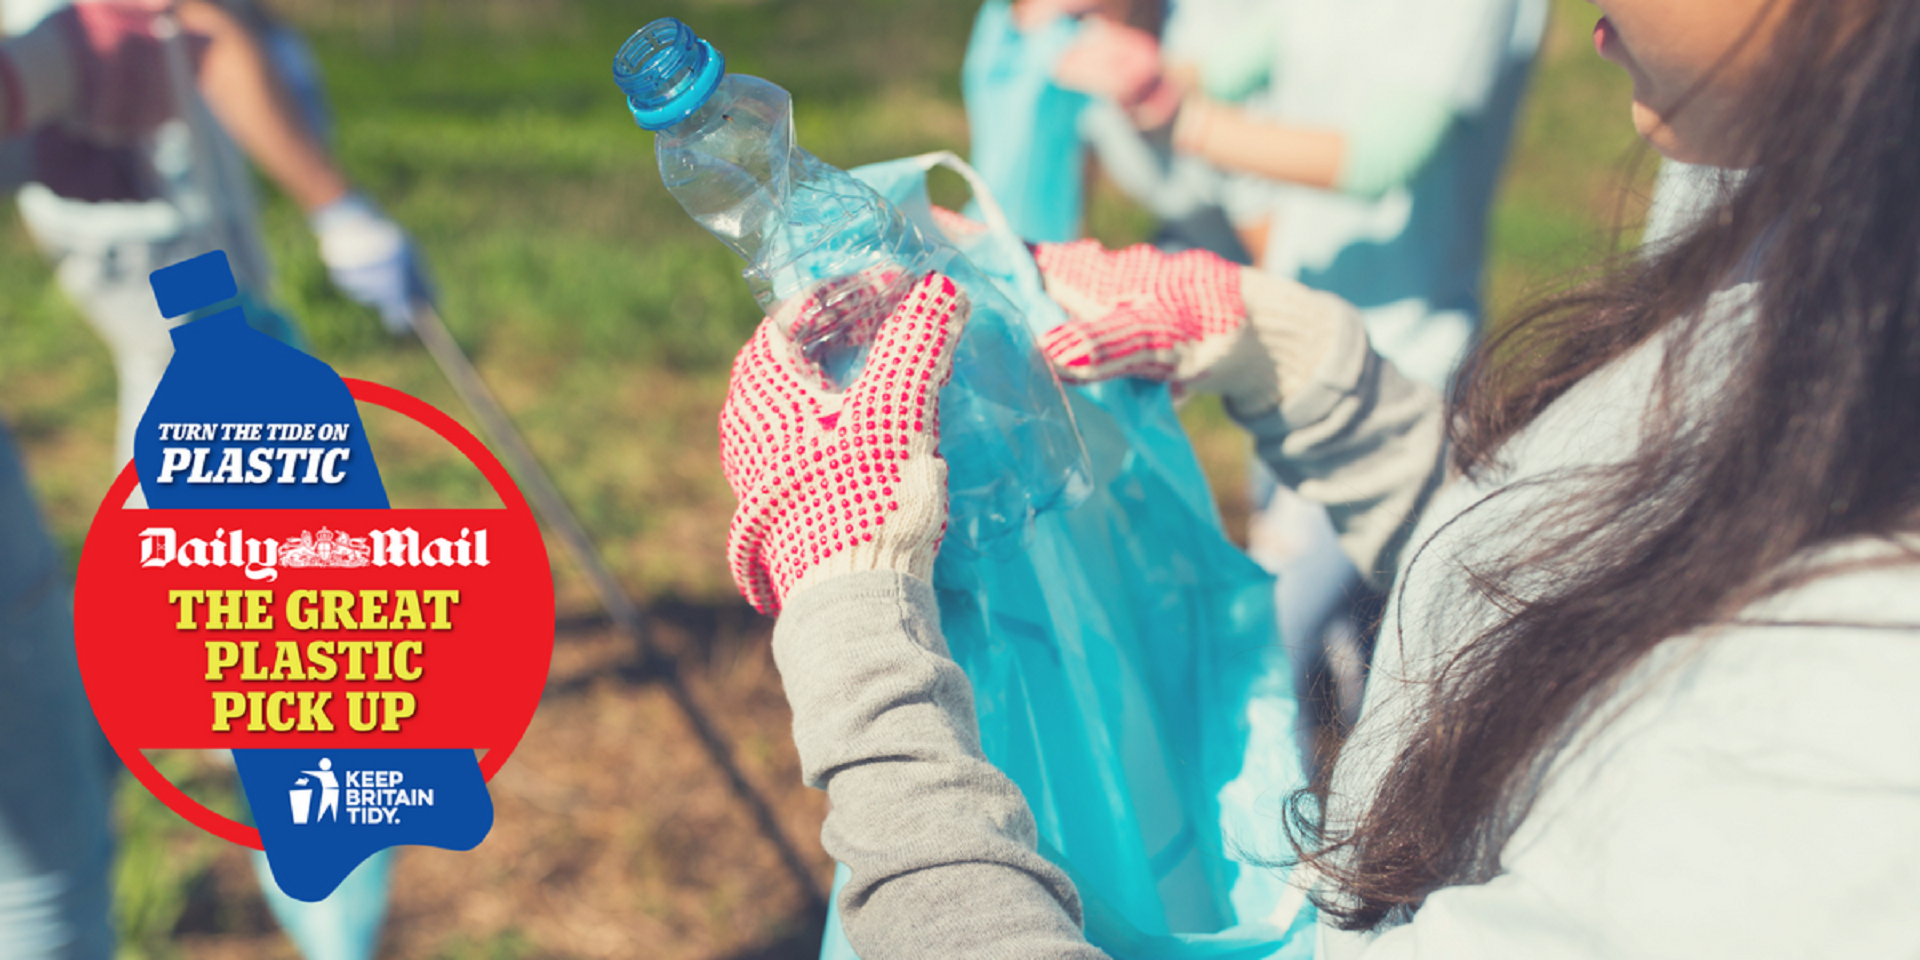 There's still time to sign up to the Great Plastic Pick Up